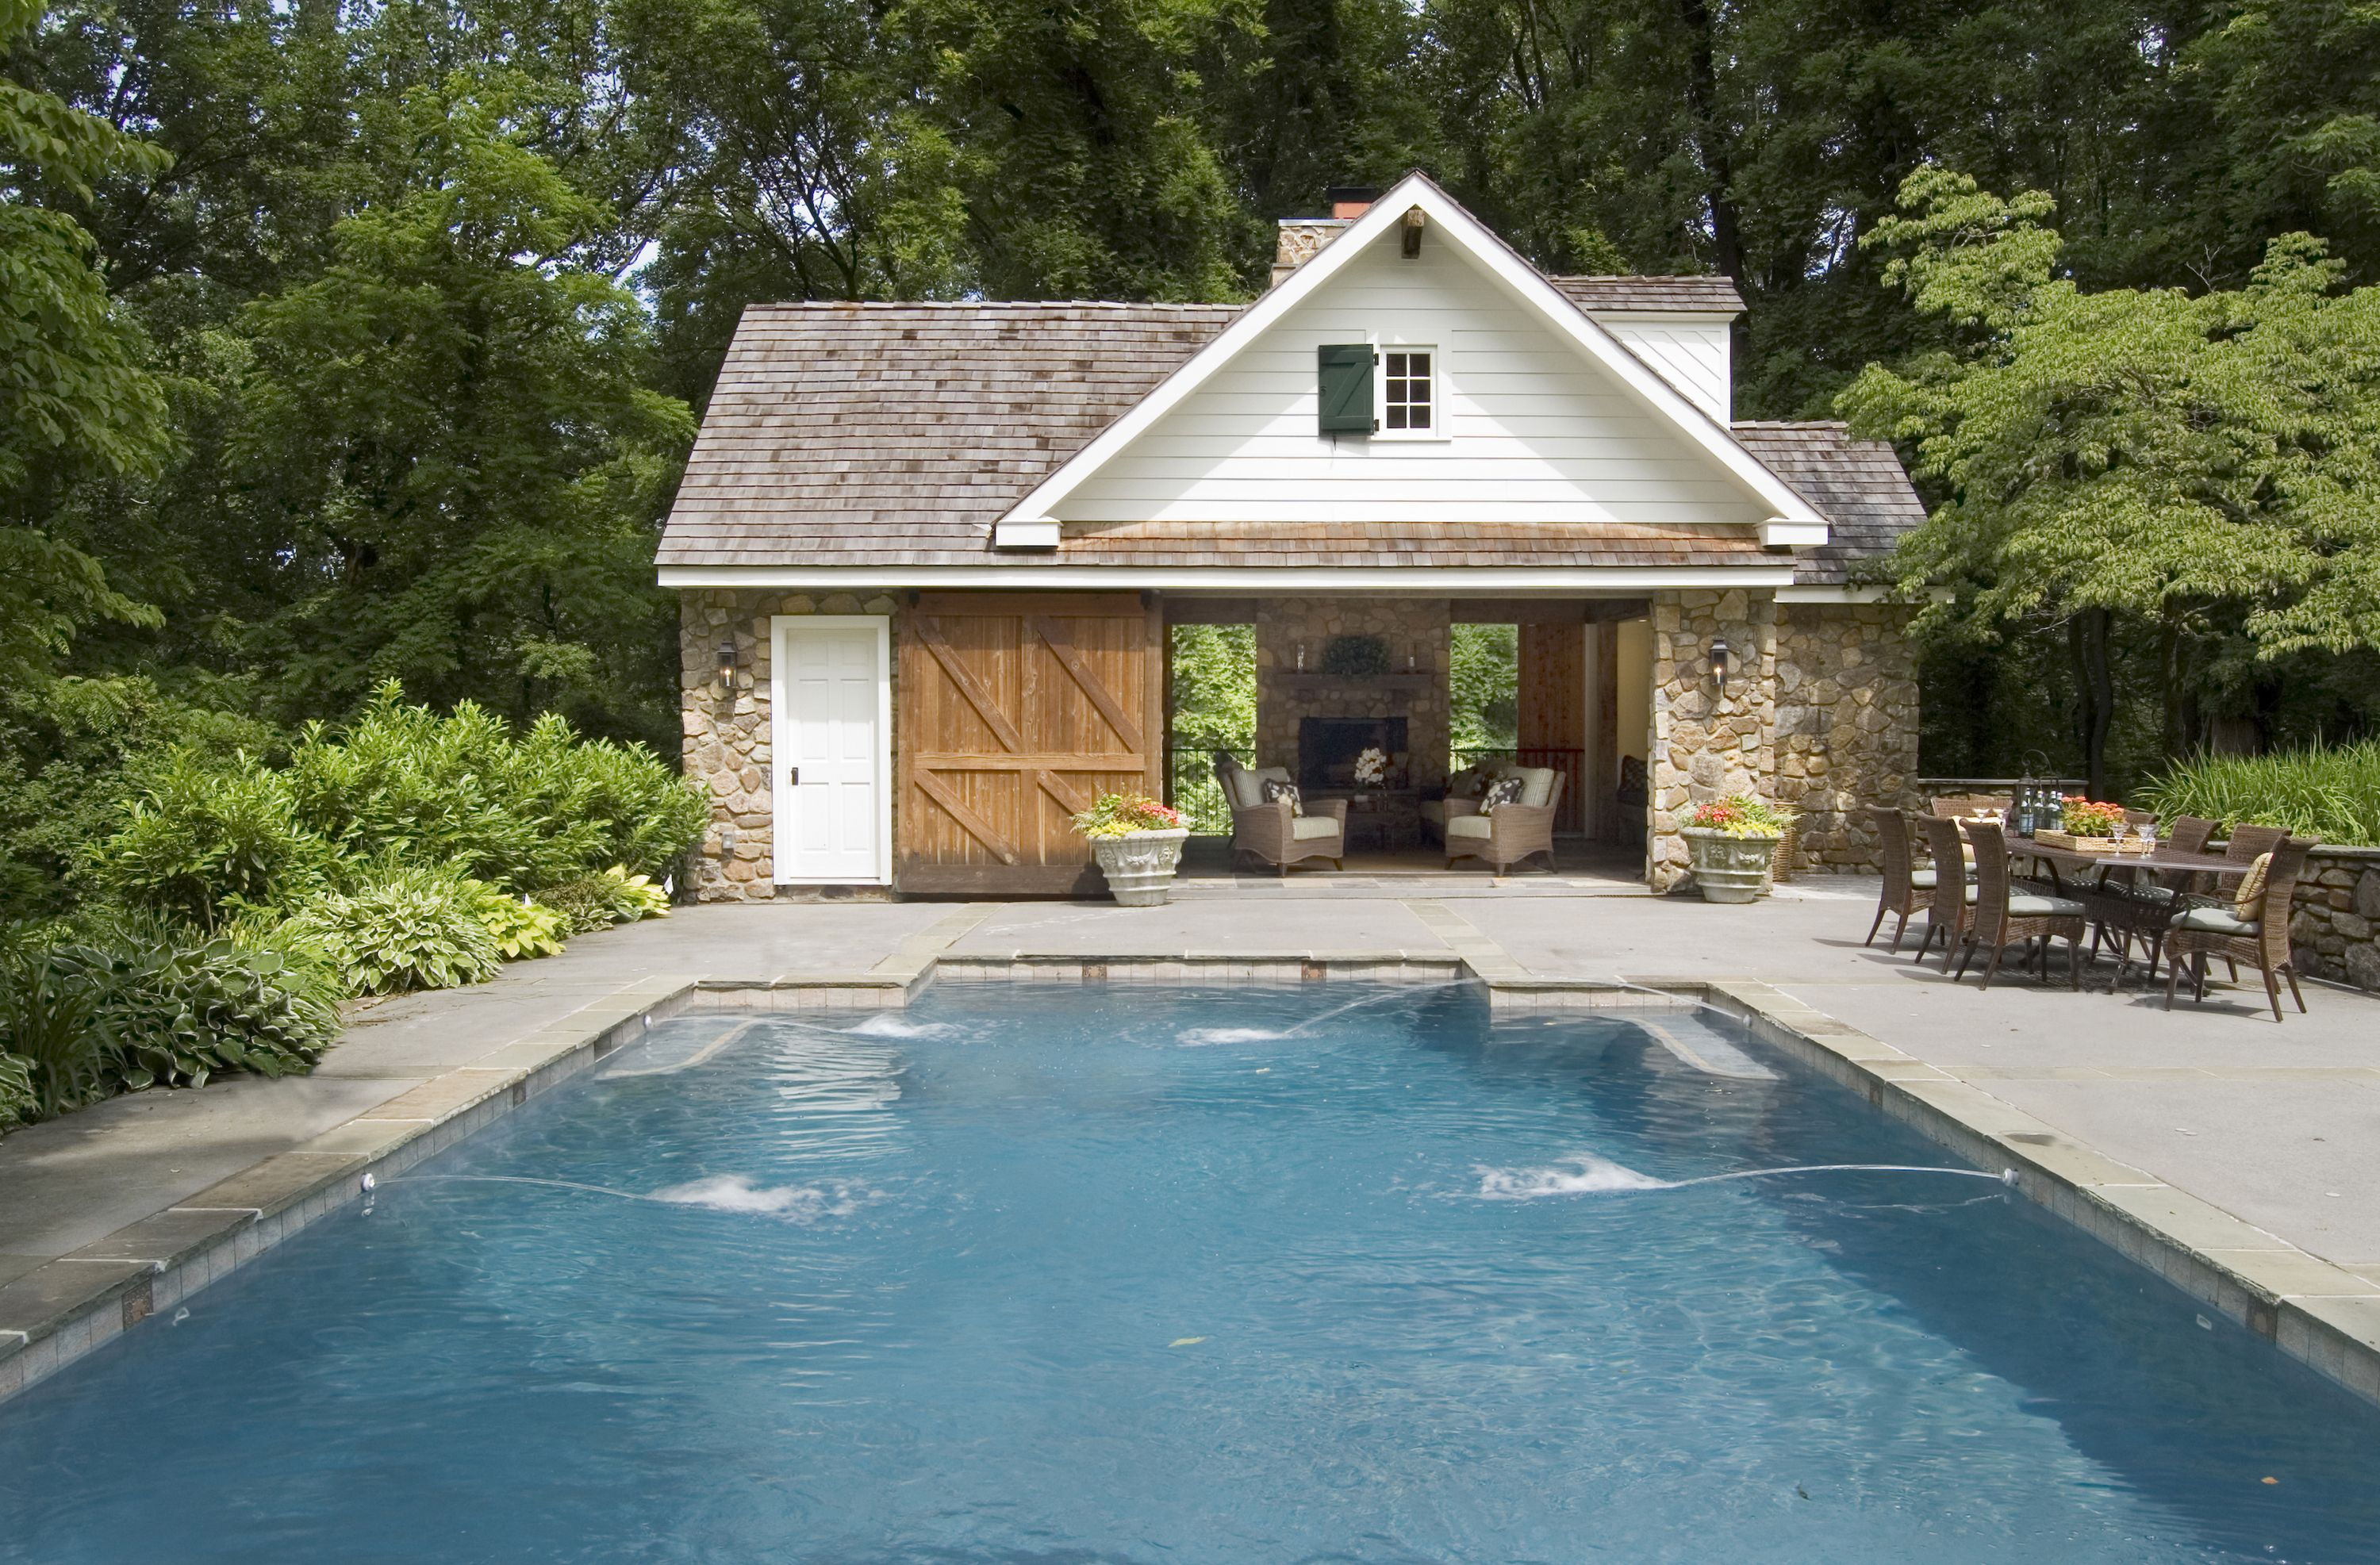 Pool House Designs Ideas house plans courtyards and pools on pinterest simple home designs and ideas Backyard Pool House Designs Pool And Pool House Ideas Finished Poolhouse Ideas